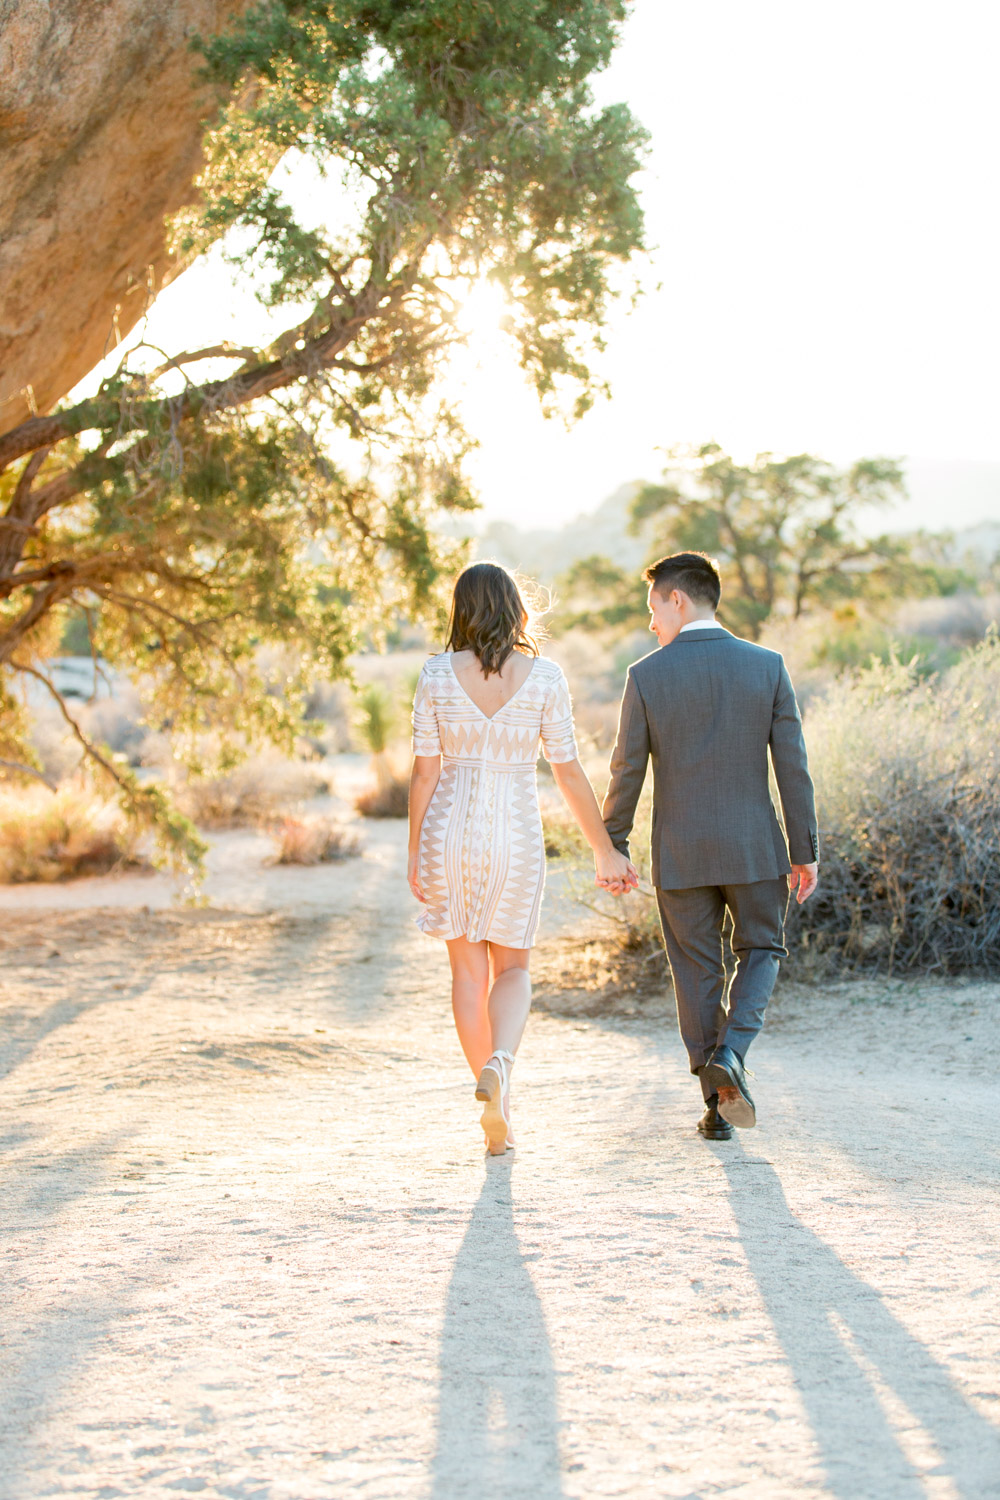 Formal engagement photos in Joshua Tree, Suit and dress ideas for engagement photos, Cavin Elizabeth Photography